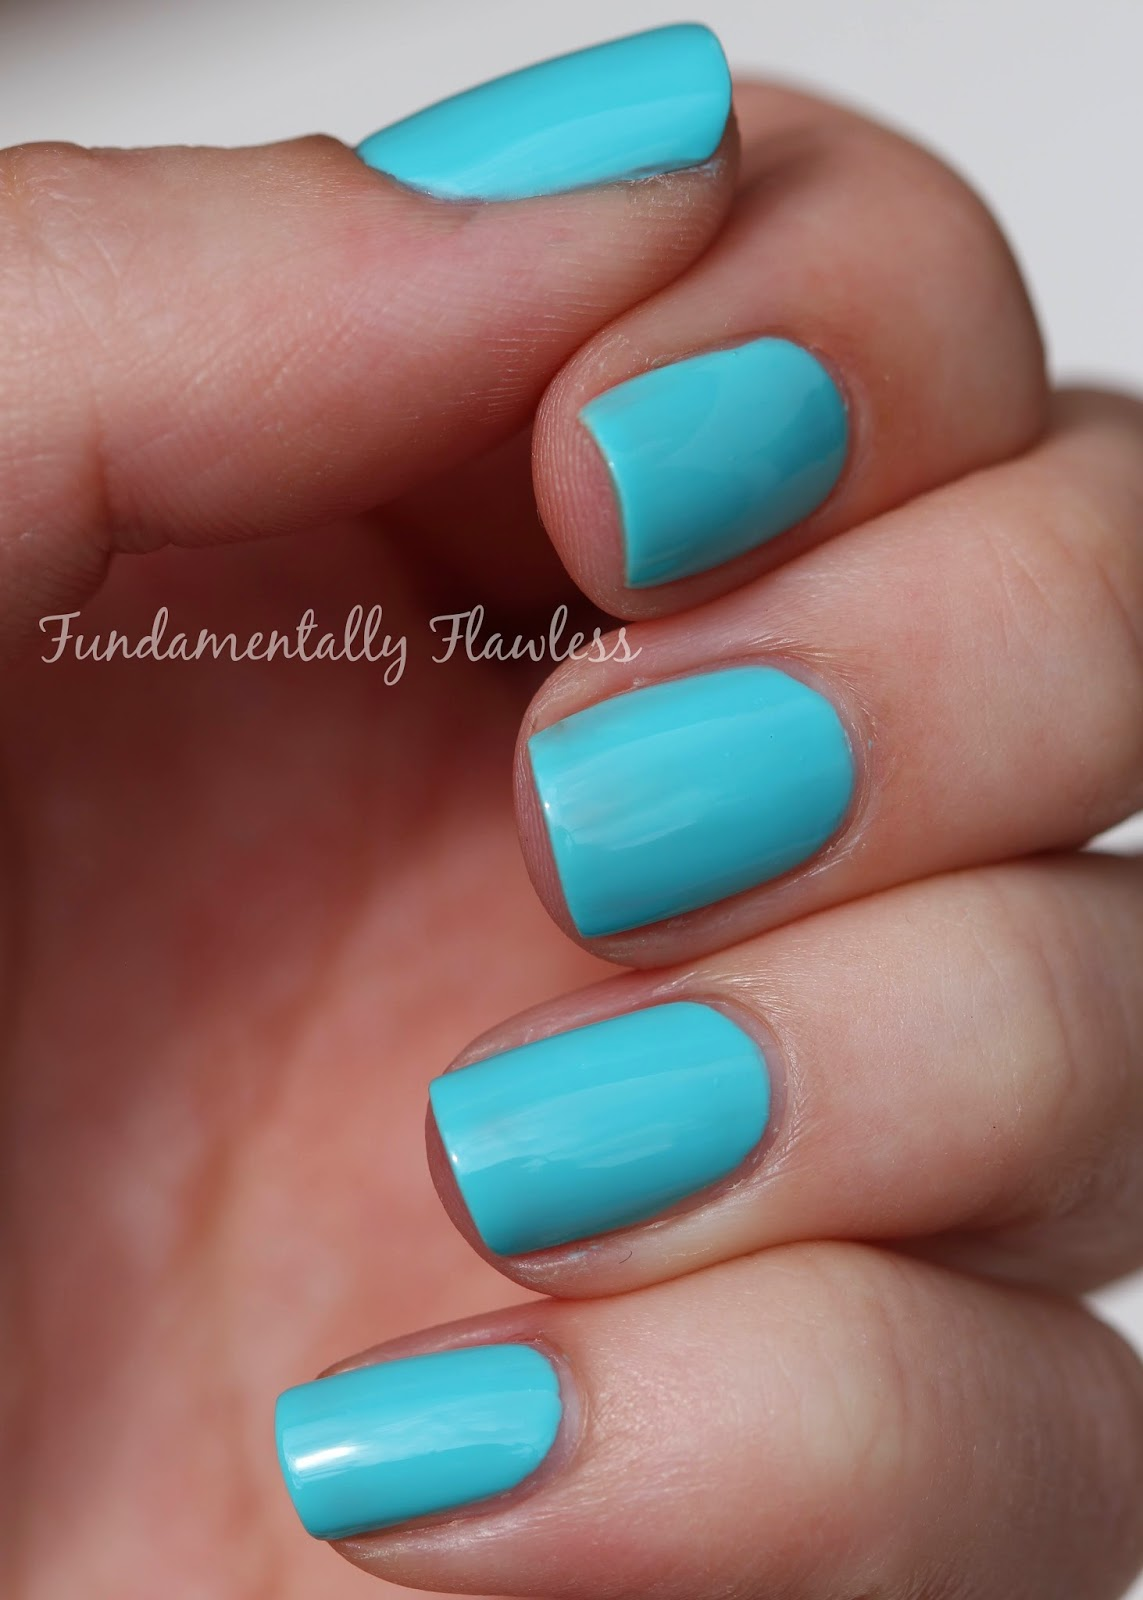 Fundamentally Flawless No 7 Gel Look Shine Summer Nail Colour Lemon Drop And Mint Treat